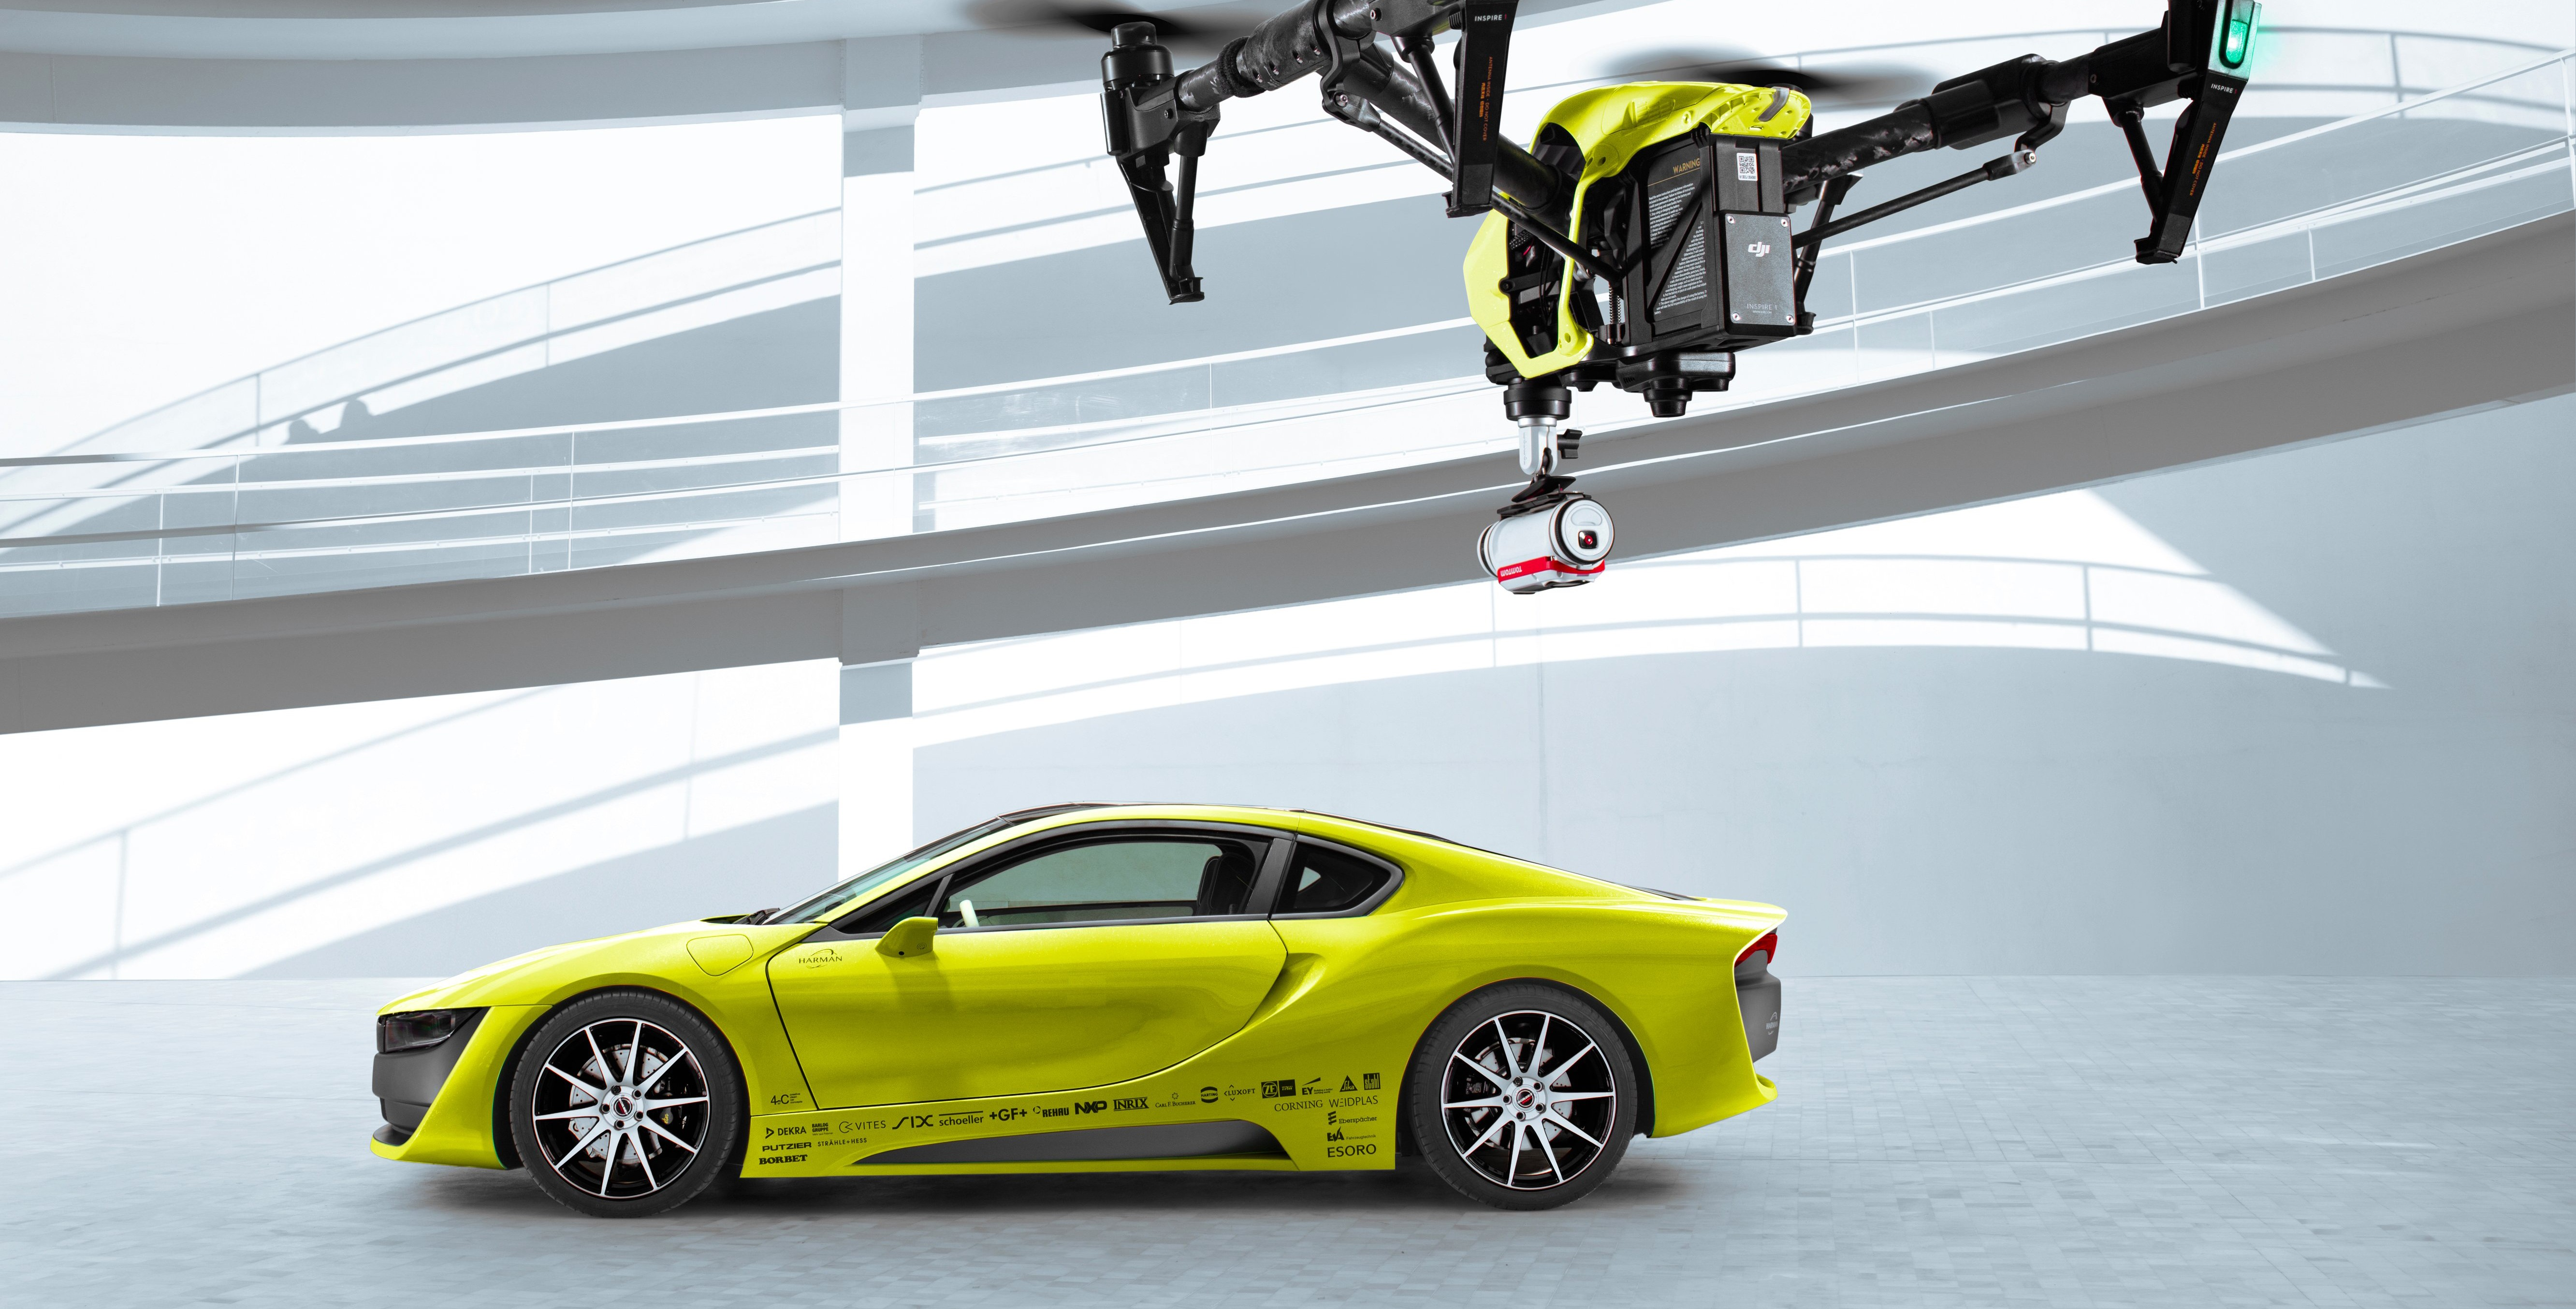 Wallpaper CES 2016 Etos Electric Car Drone DJI Inspire One Cars